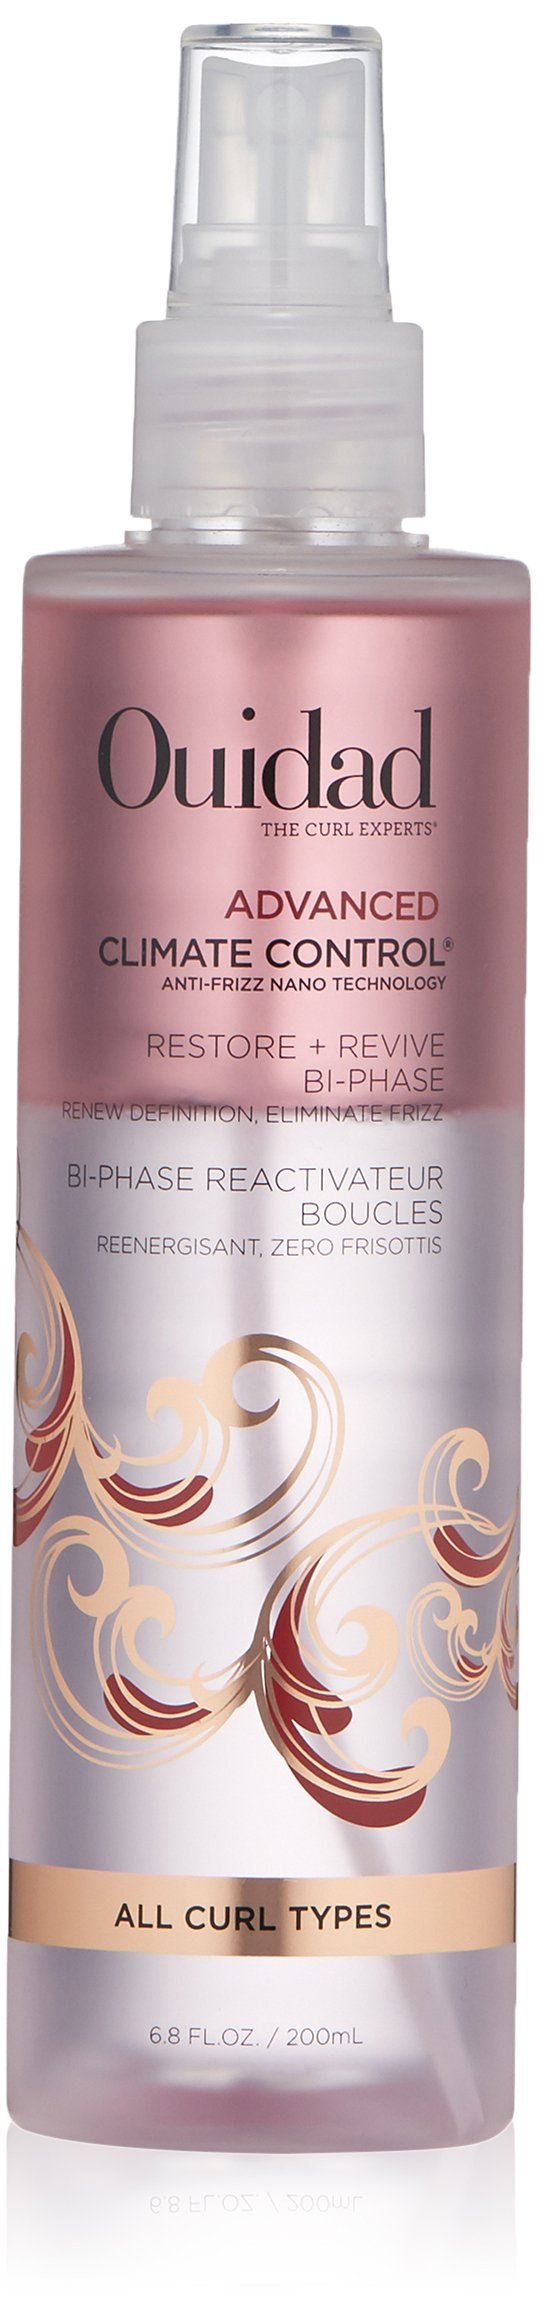 Ouidad Advanced Climate Control Restore + Revive Bi-Phase, 1.0 Fl Oz